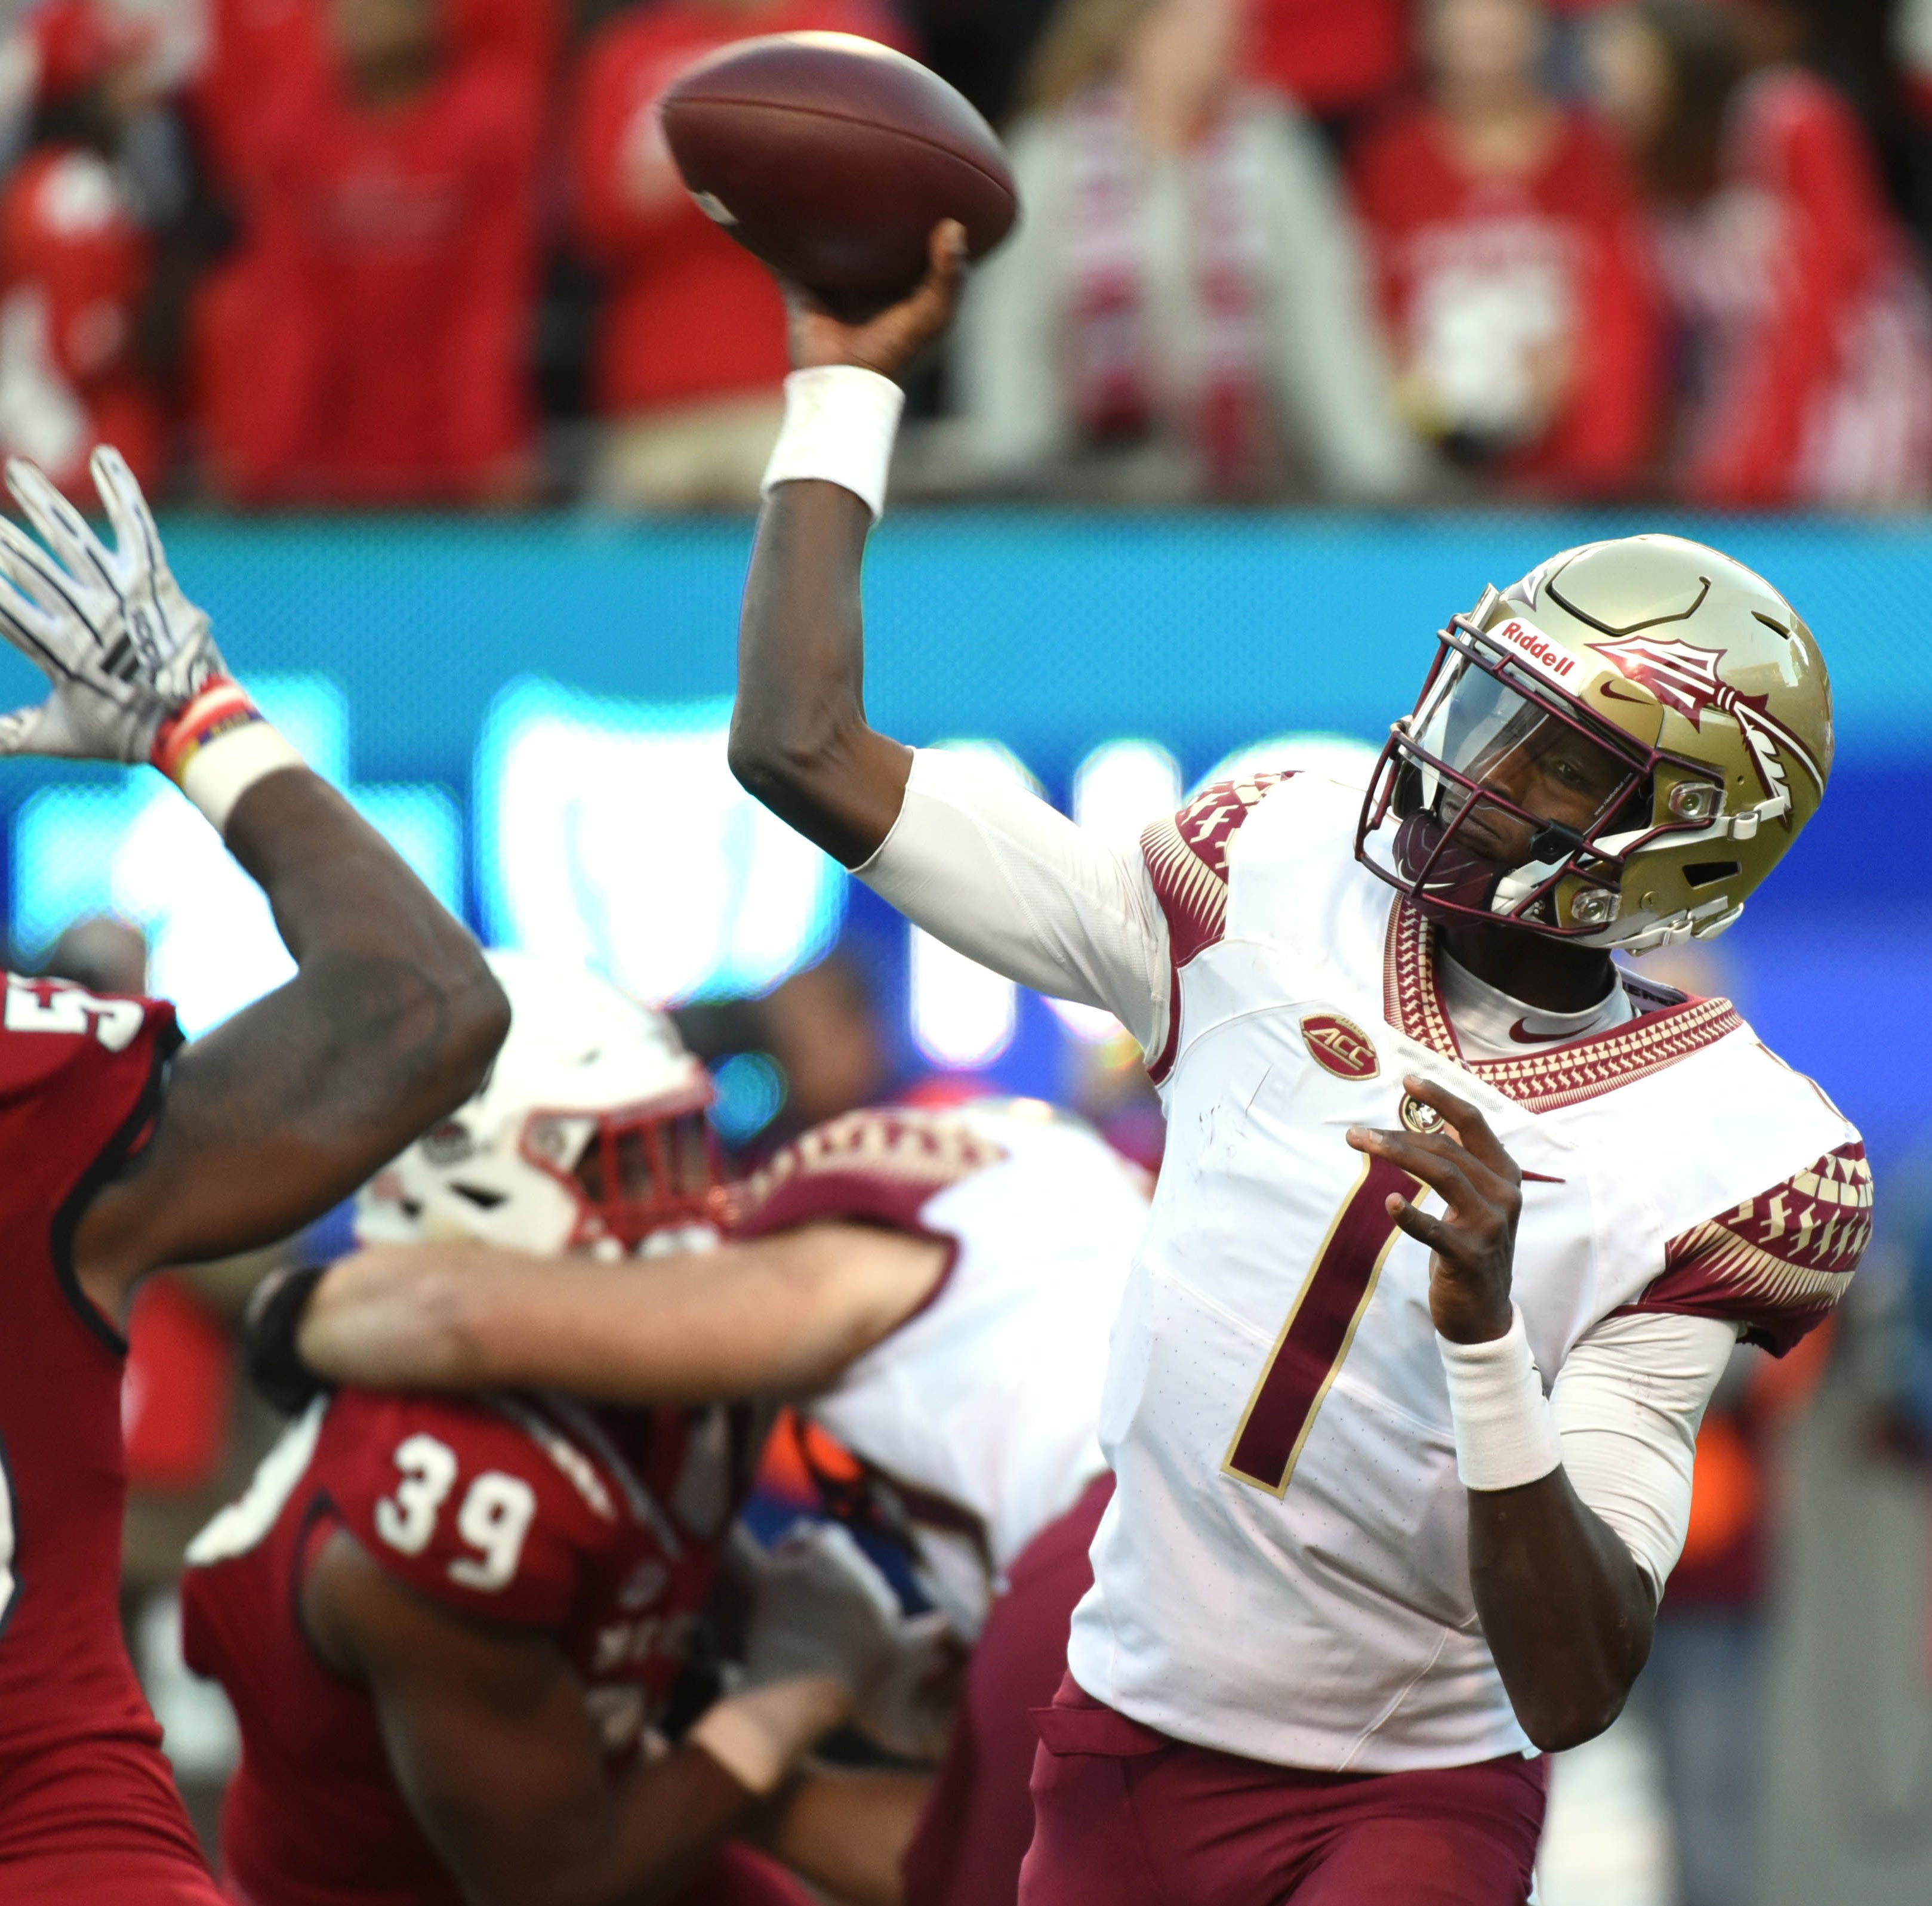 Report: Florida State QB James Blackman enters transfer portal